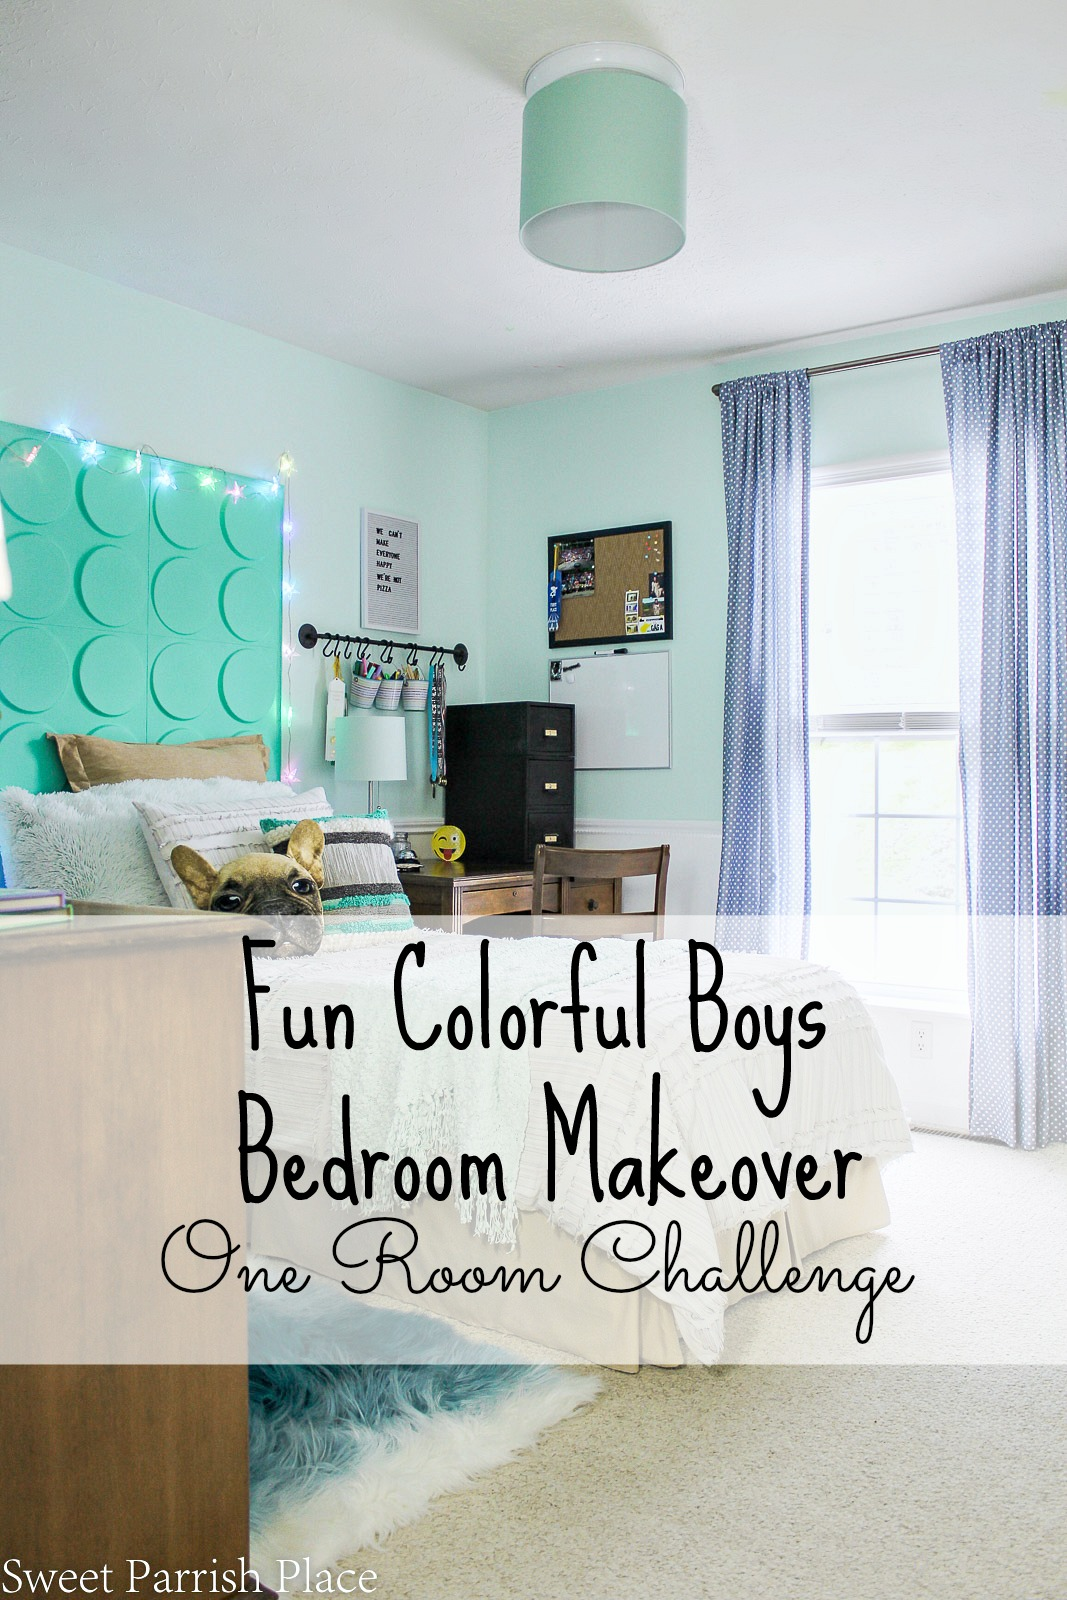 It's been 7 weeks in the making but today is the day and I'm so excited to share my boys bedroom makeover for the Fall One Room Challenge!